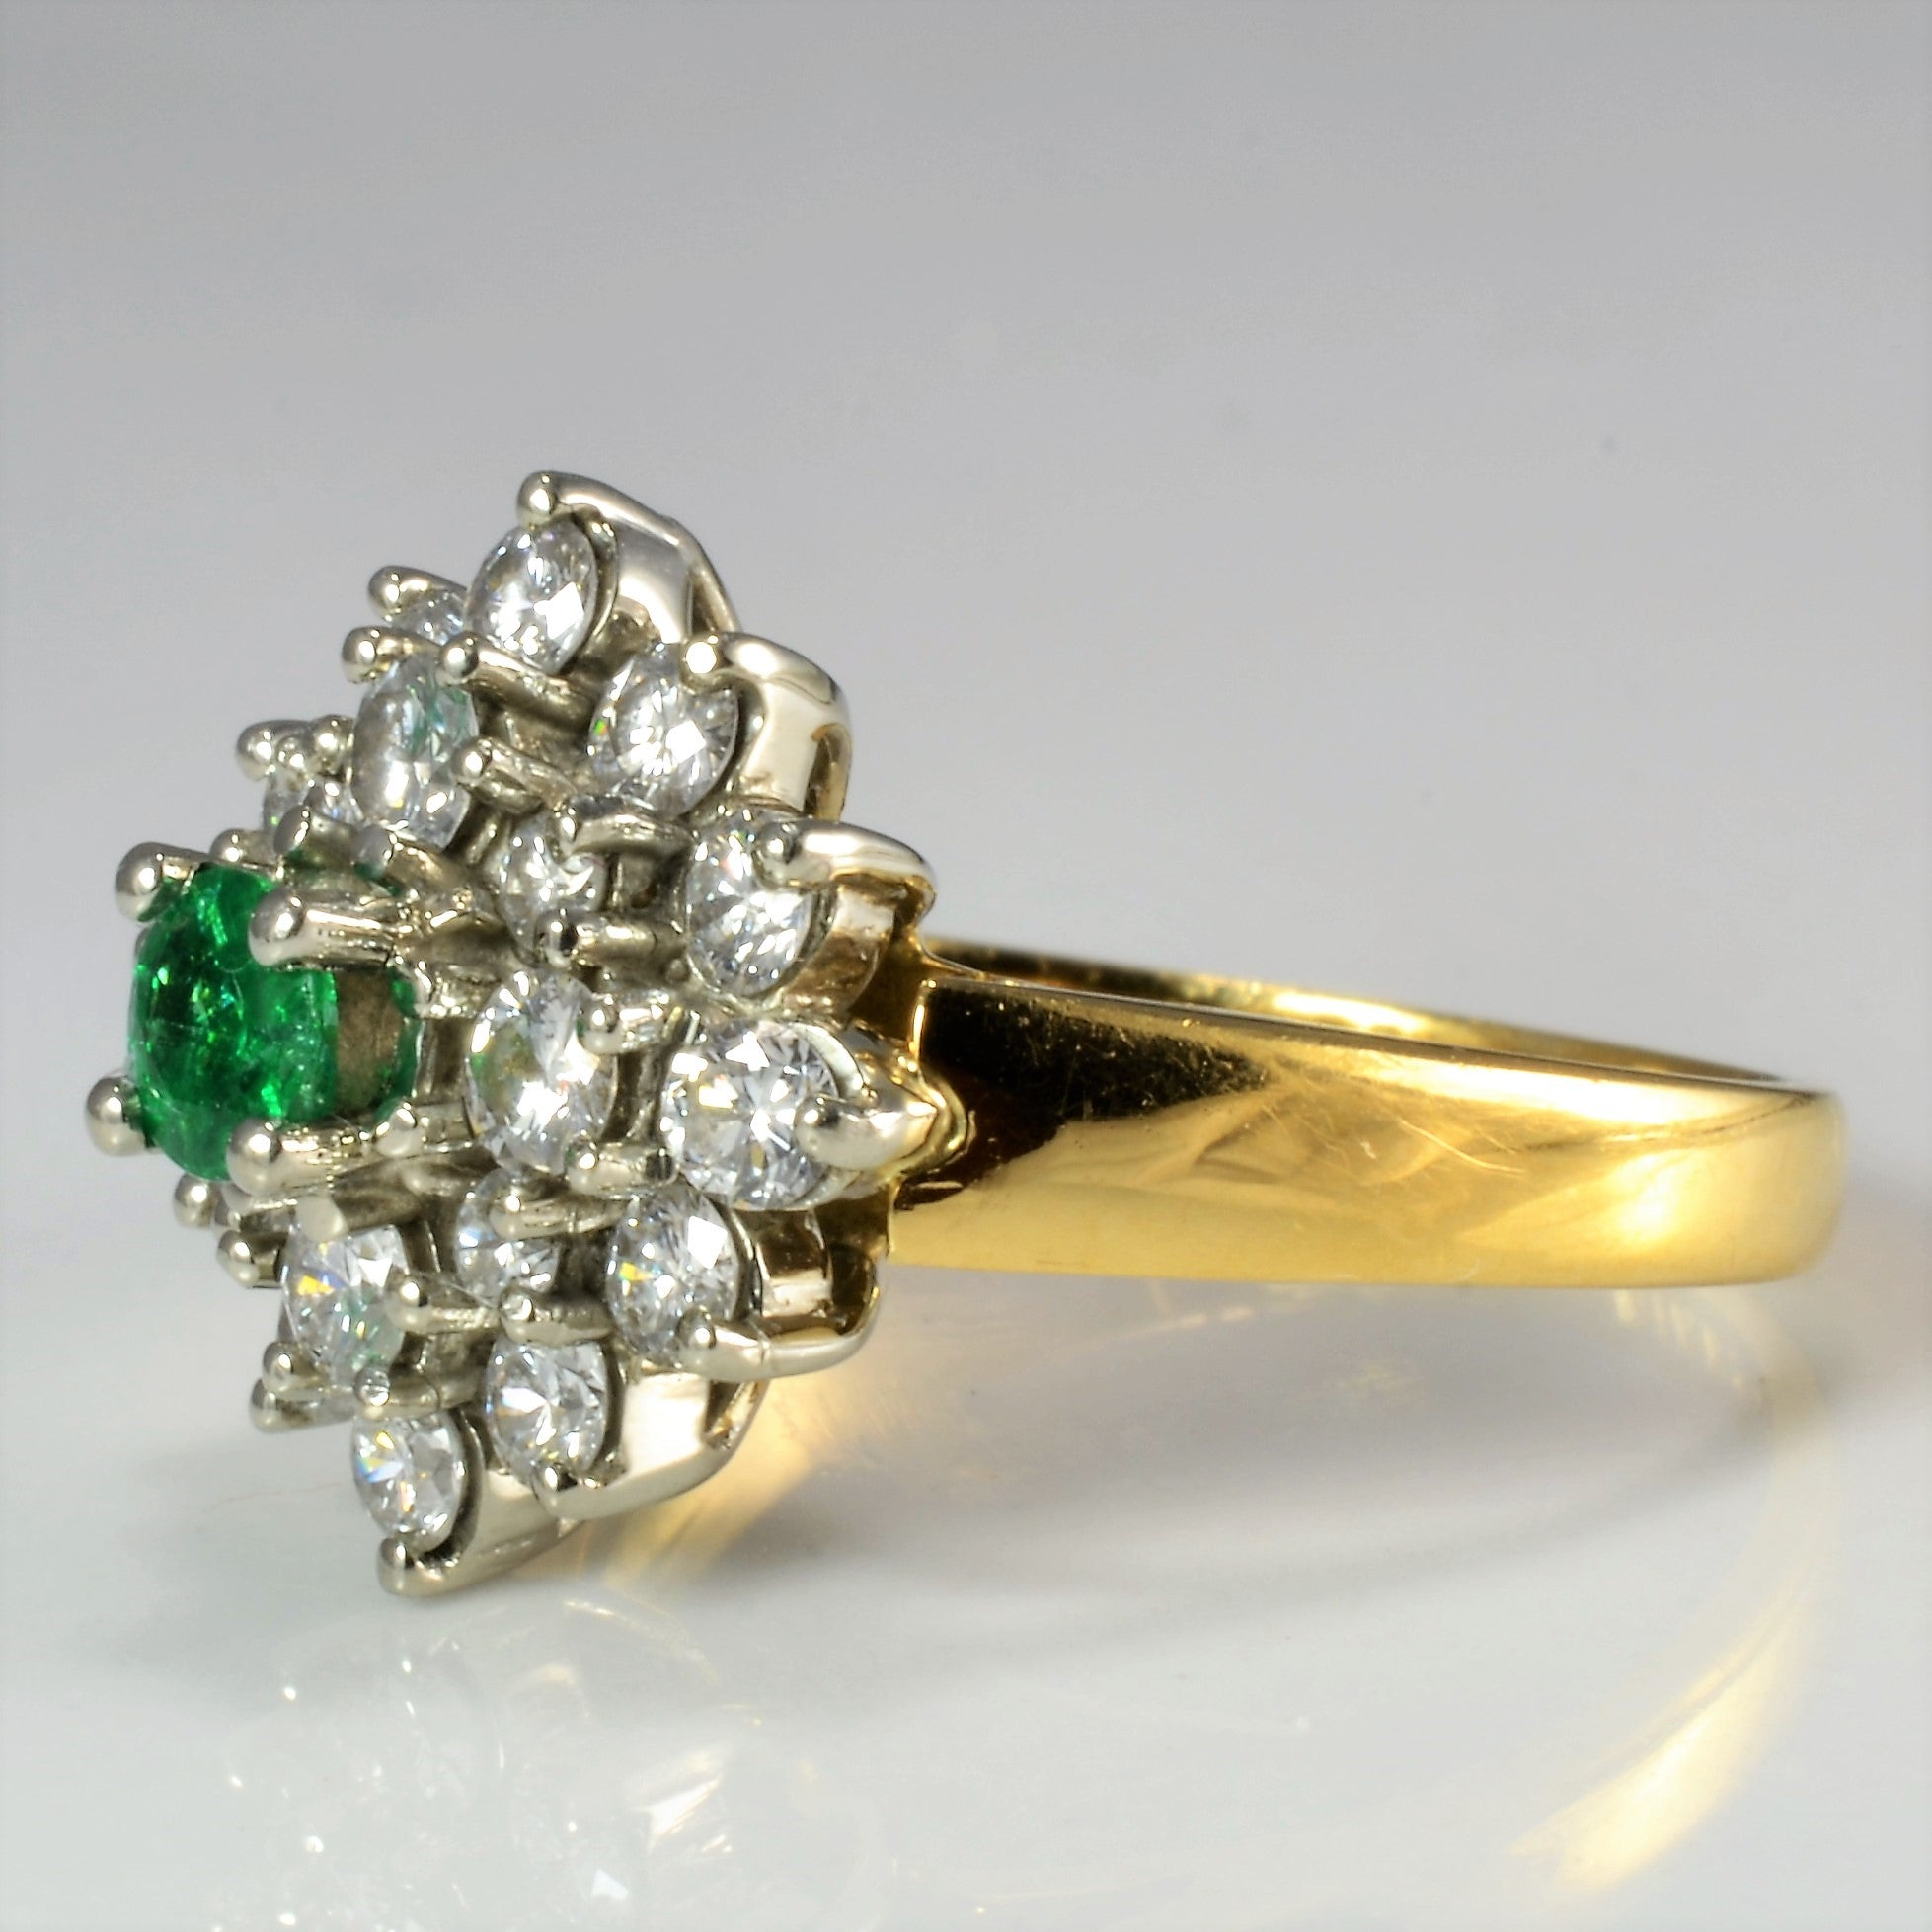 BIRKS Cluster Diamond & Emerald Ladies Ring | 0.64 ctw, SZ 5 |